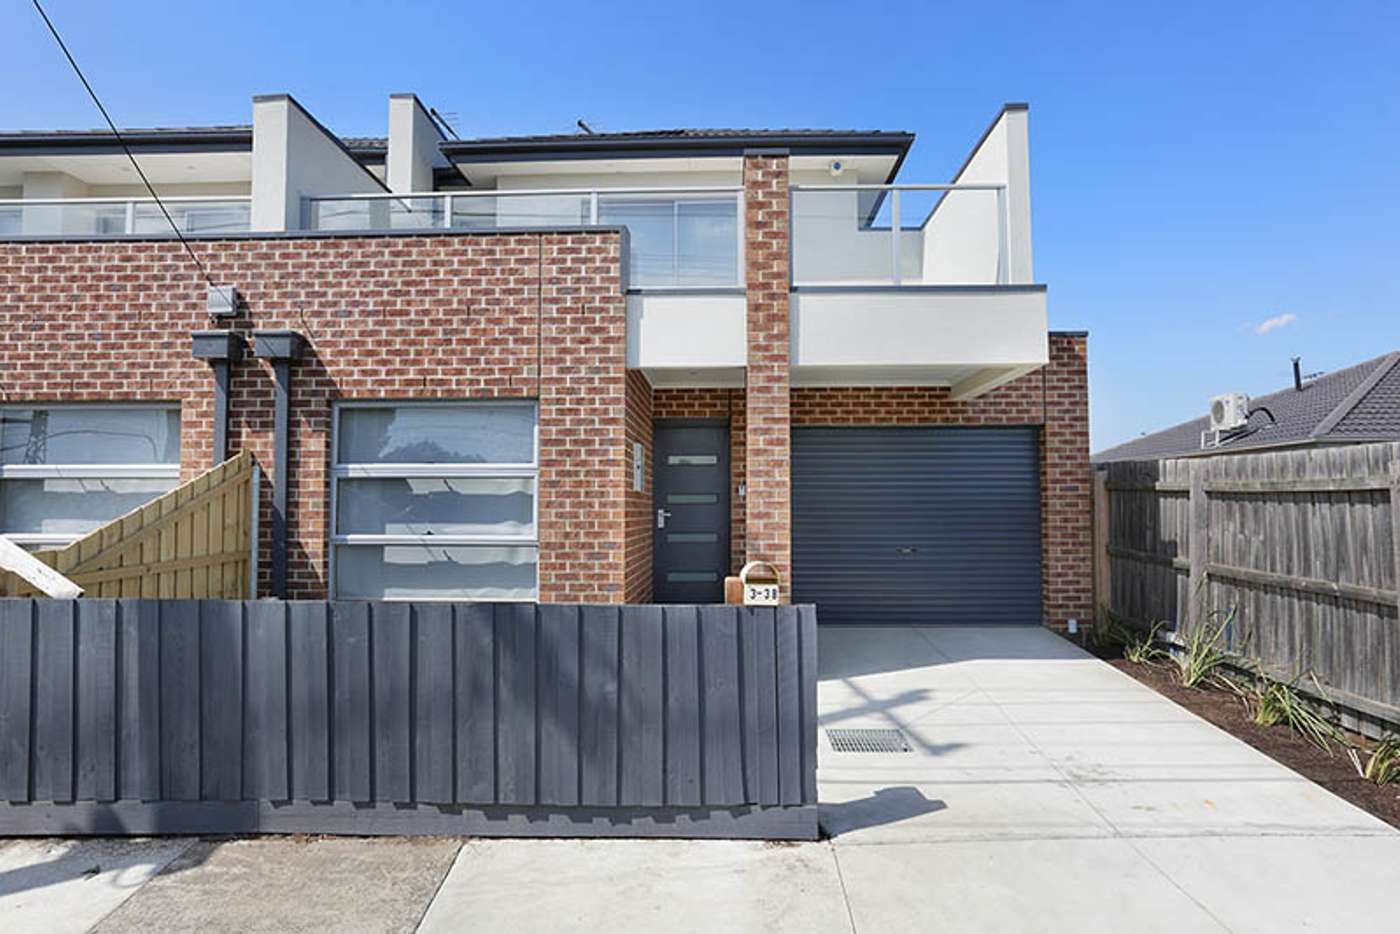 Main view of Homely townhouse listing, 3/38 Electric Street, Broadmeadows VIC 3047